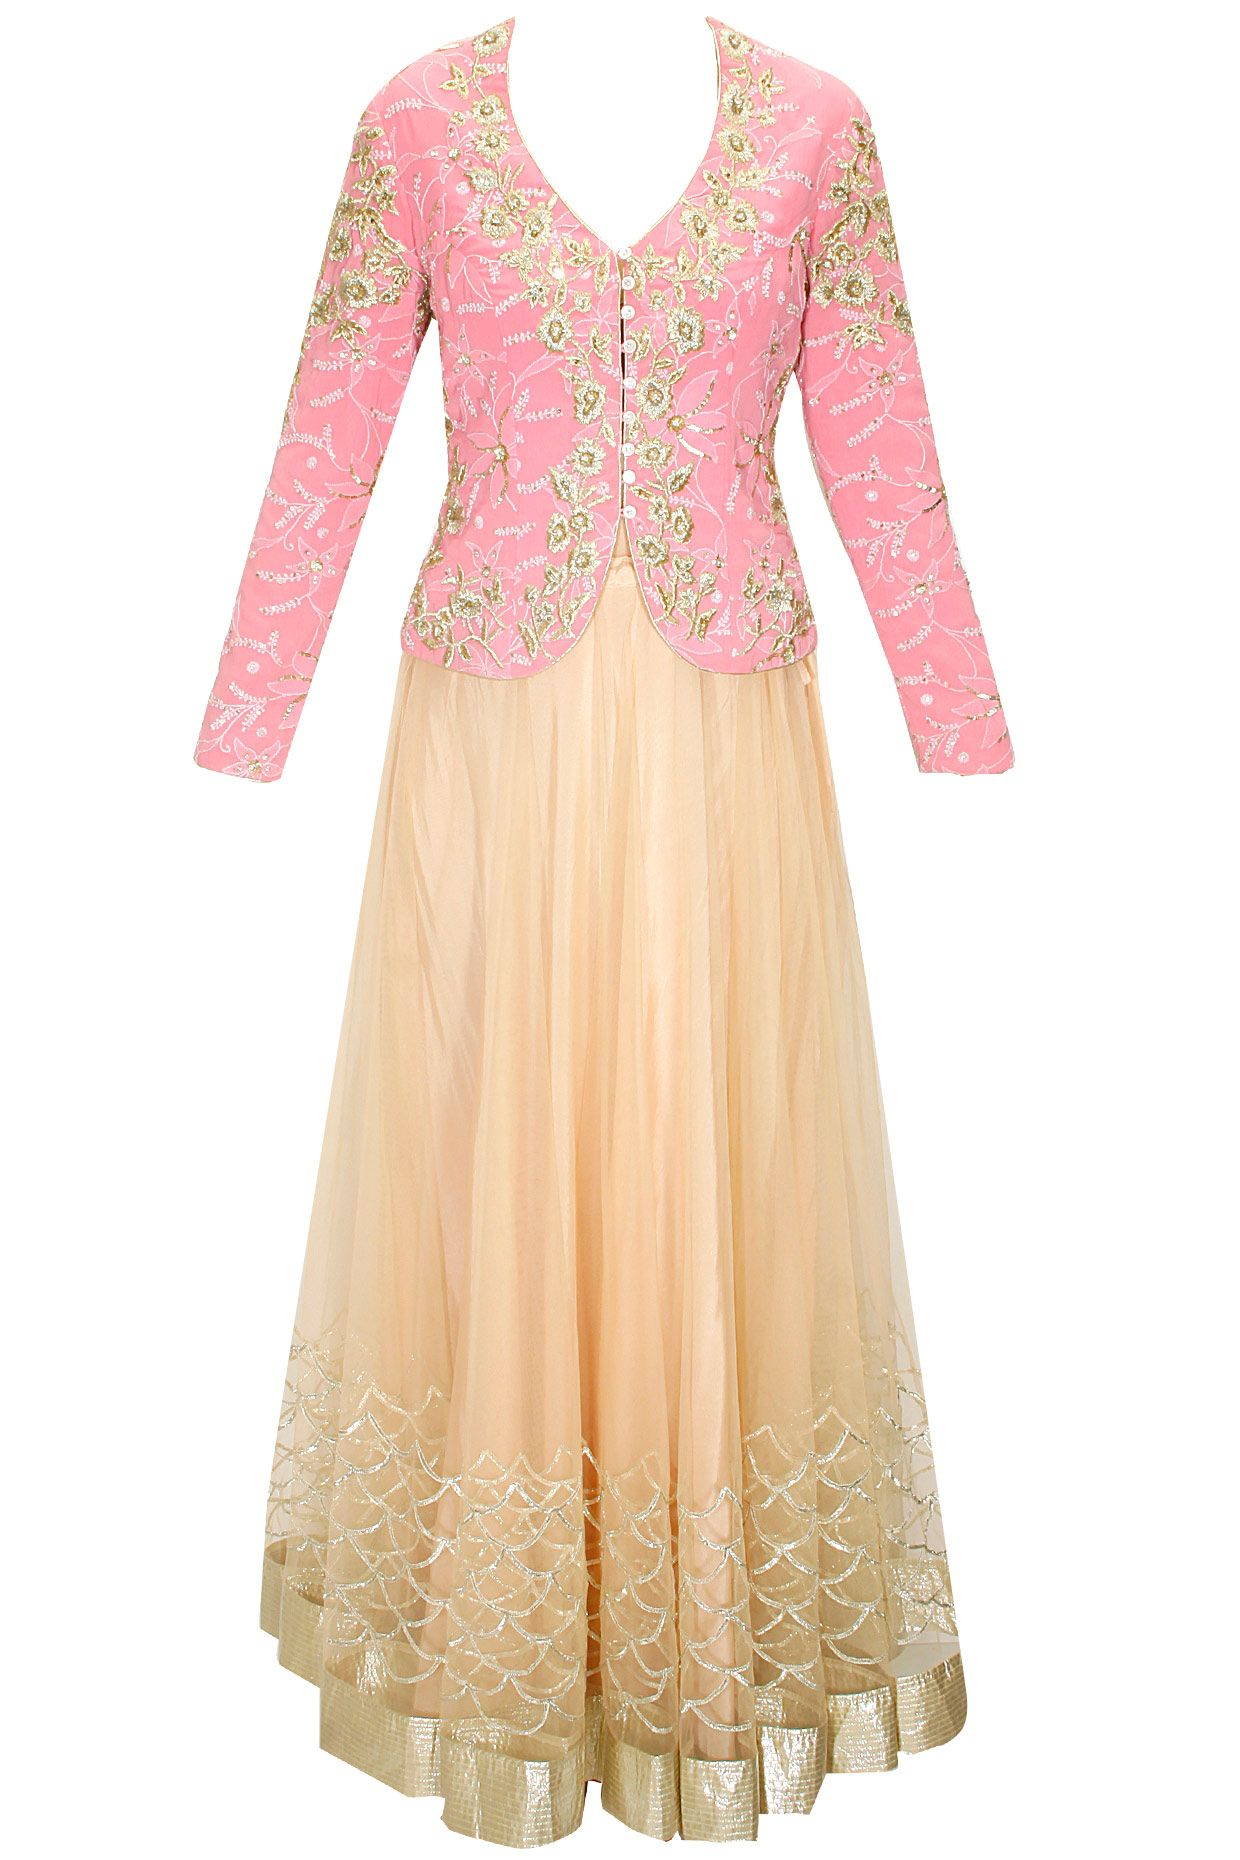 10ad450ffb4 No route page also best beautiful lehengas images indian clothes outfits rh  pinterest